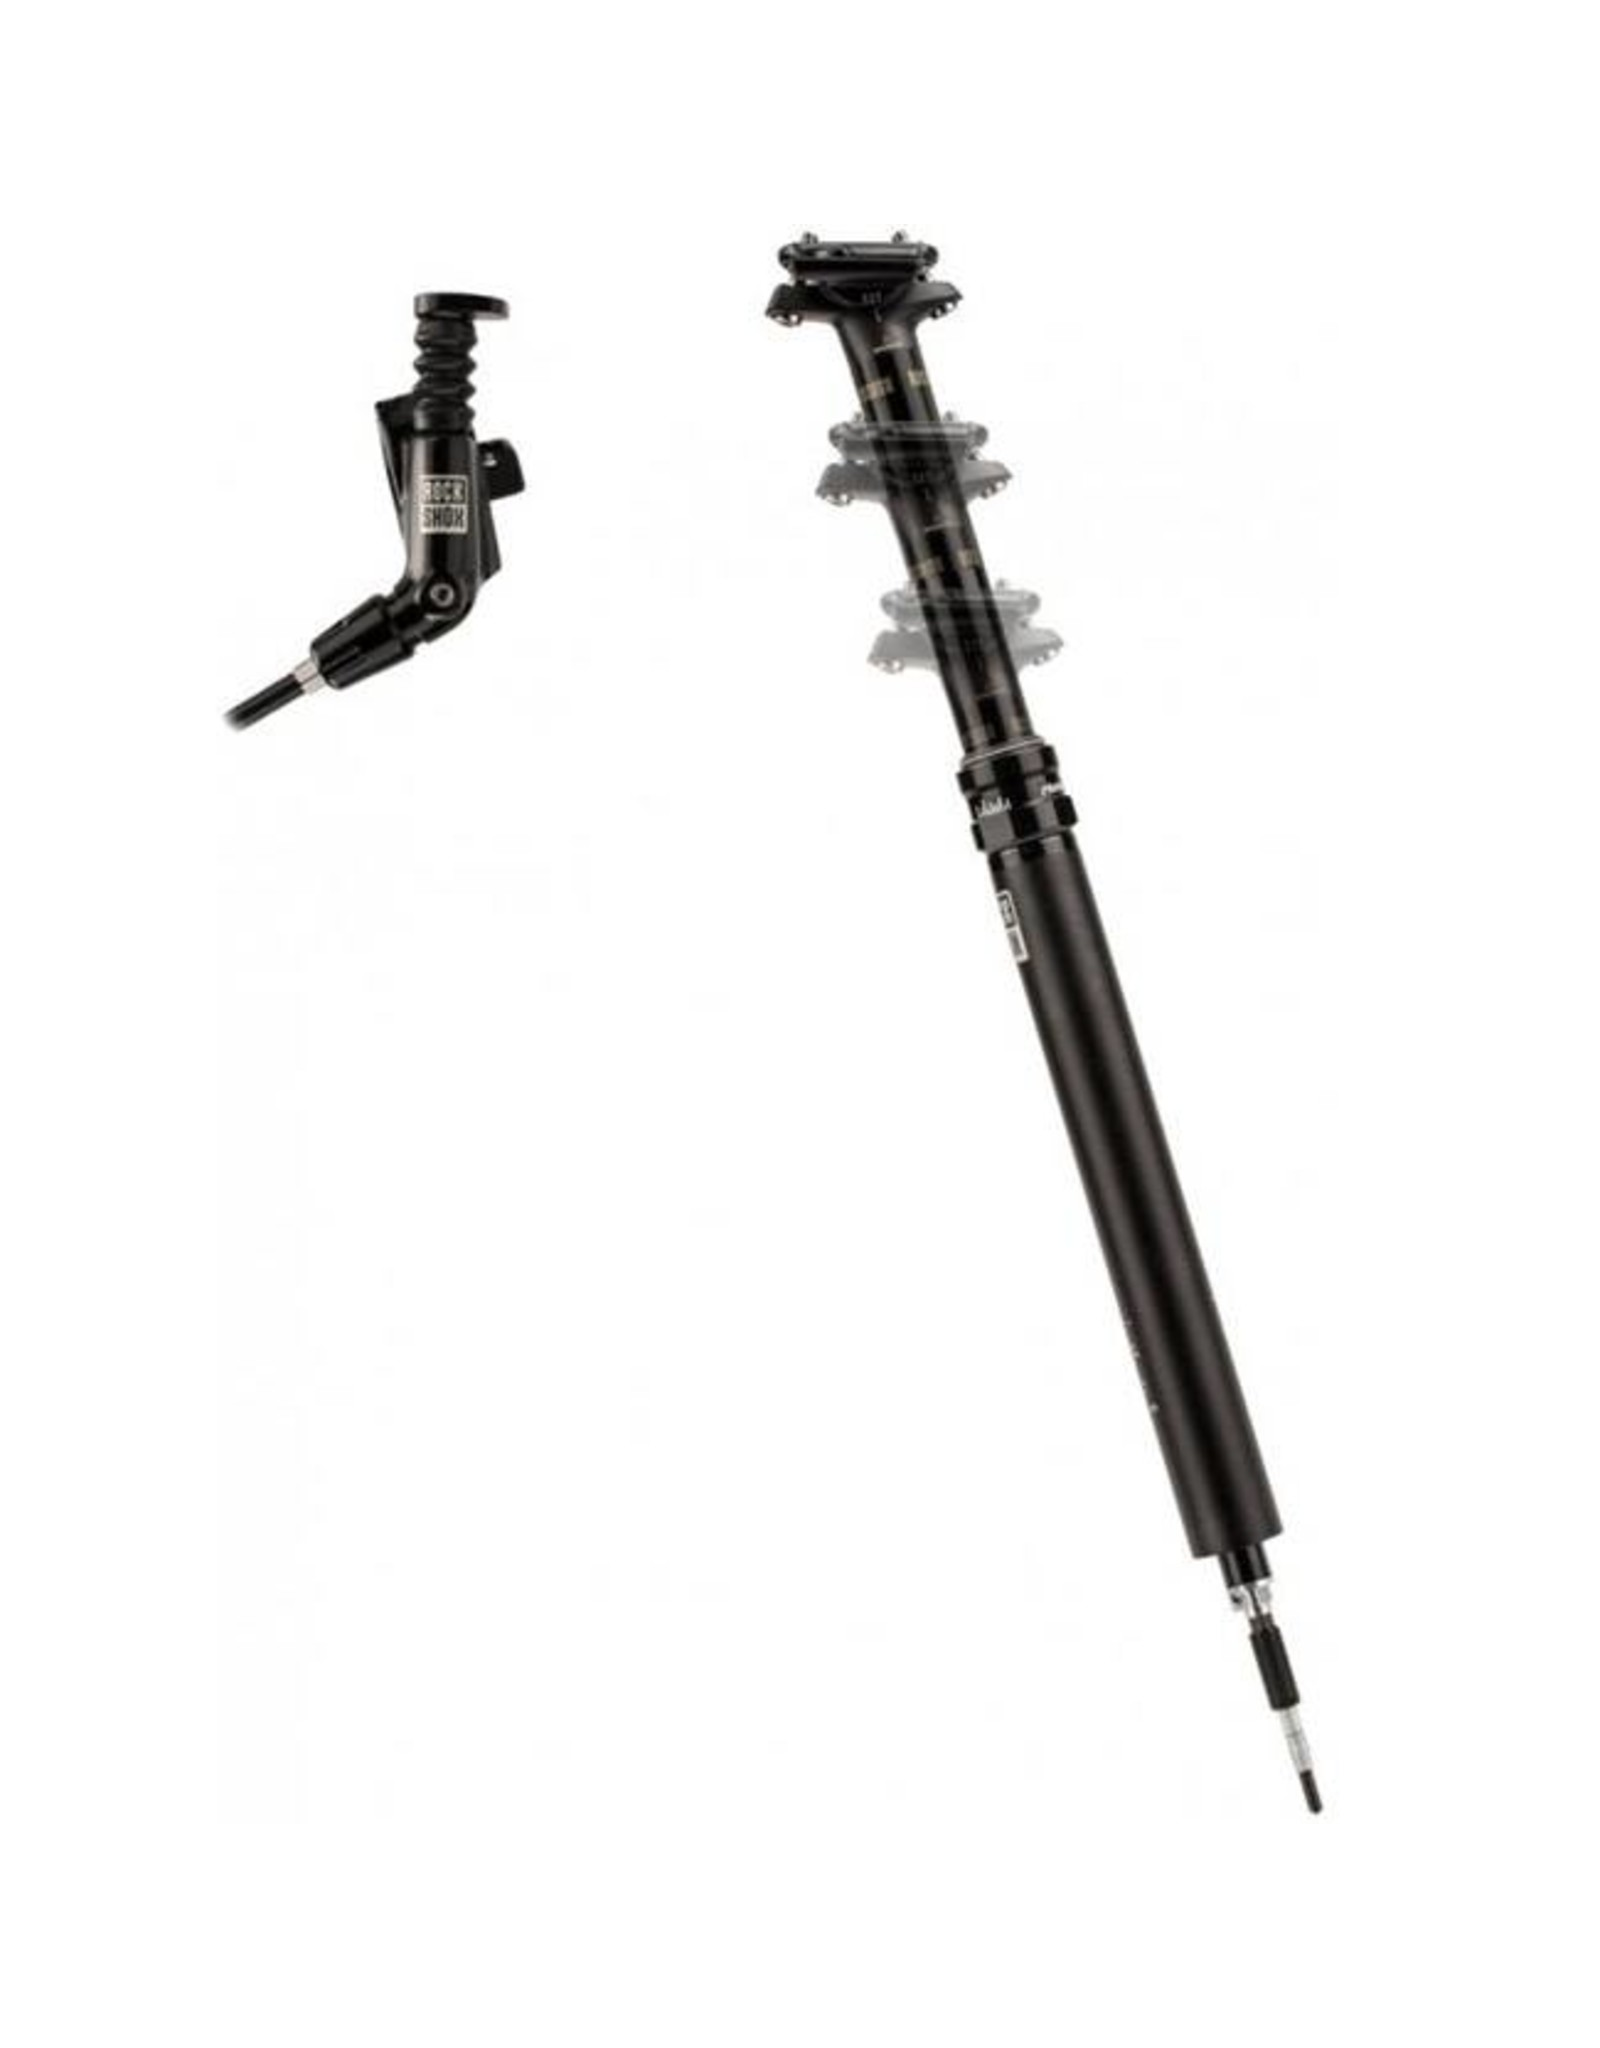 Rockshox RockShox Reverb Stealth 31.6 x 440mm Dropper Post, 150mm Travel, MMX Left, B1